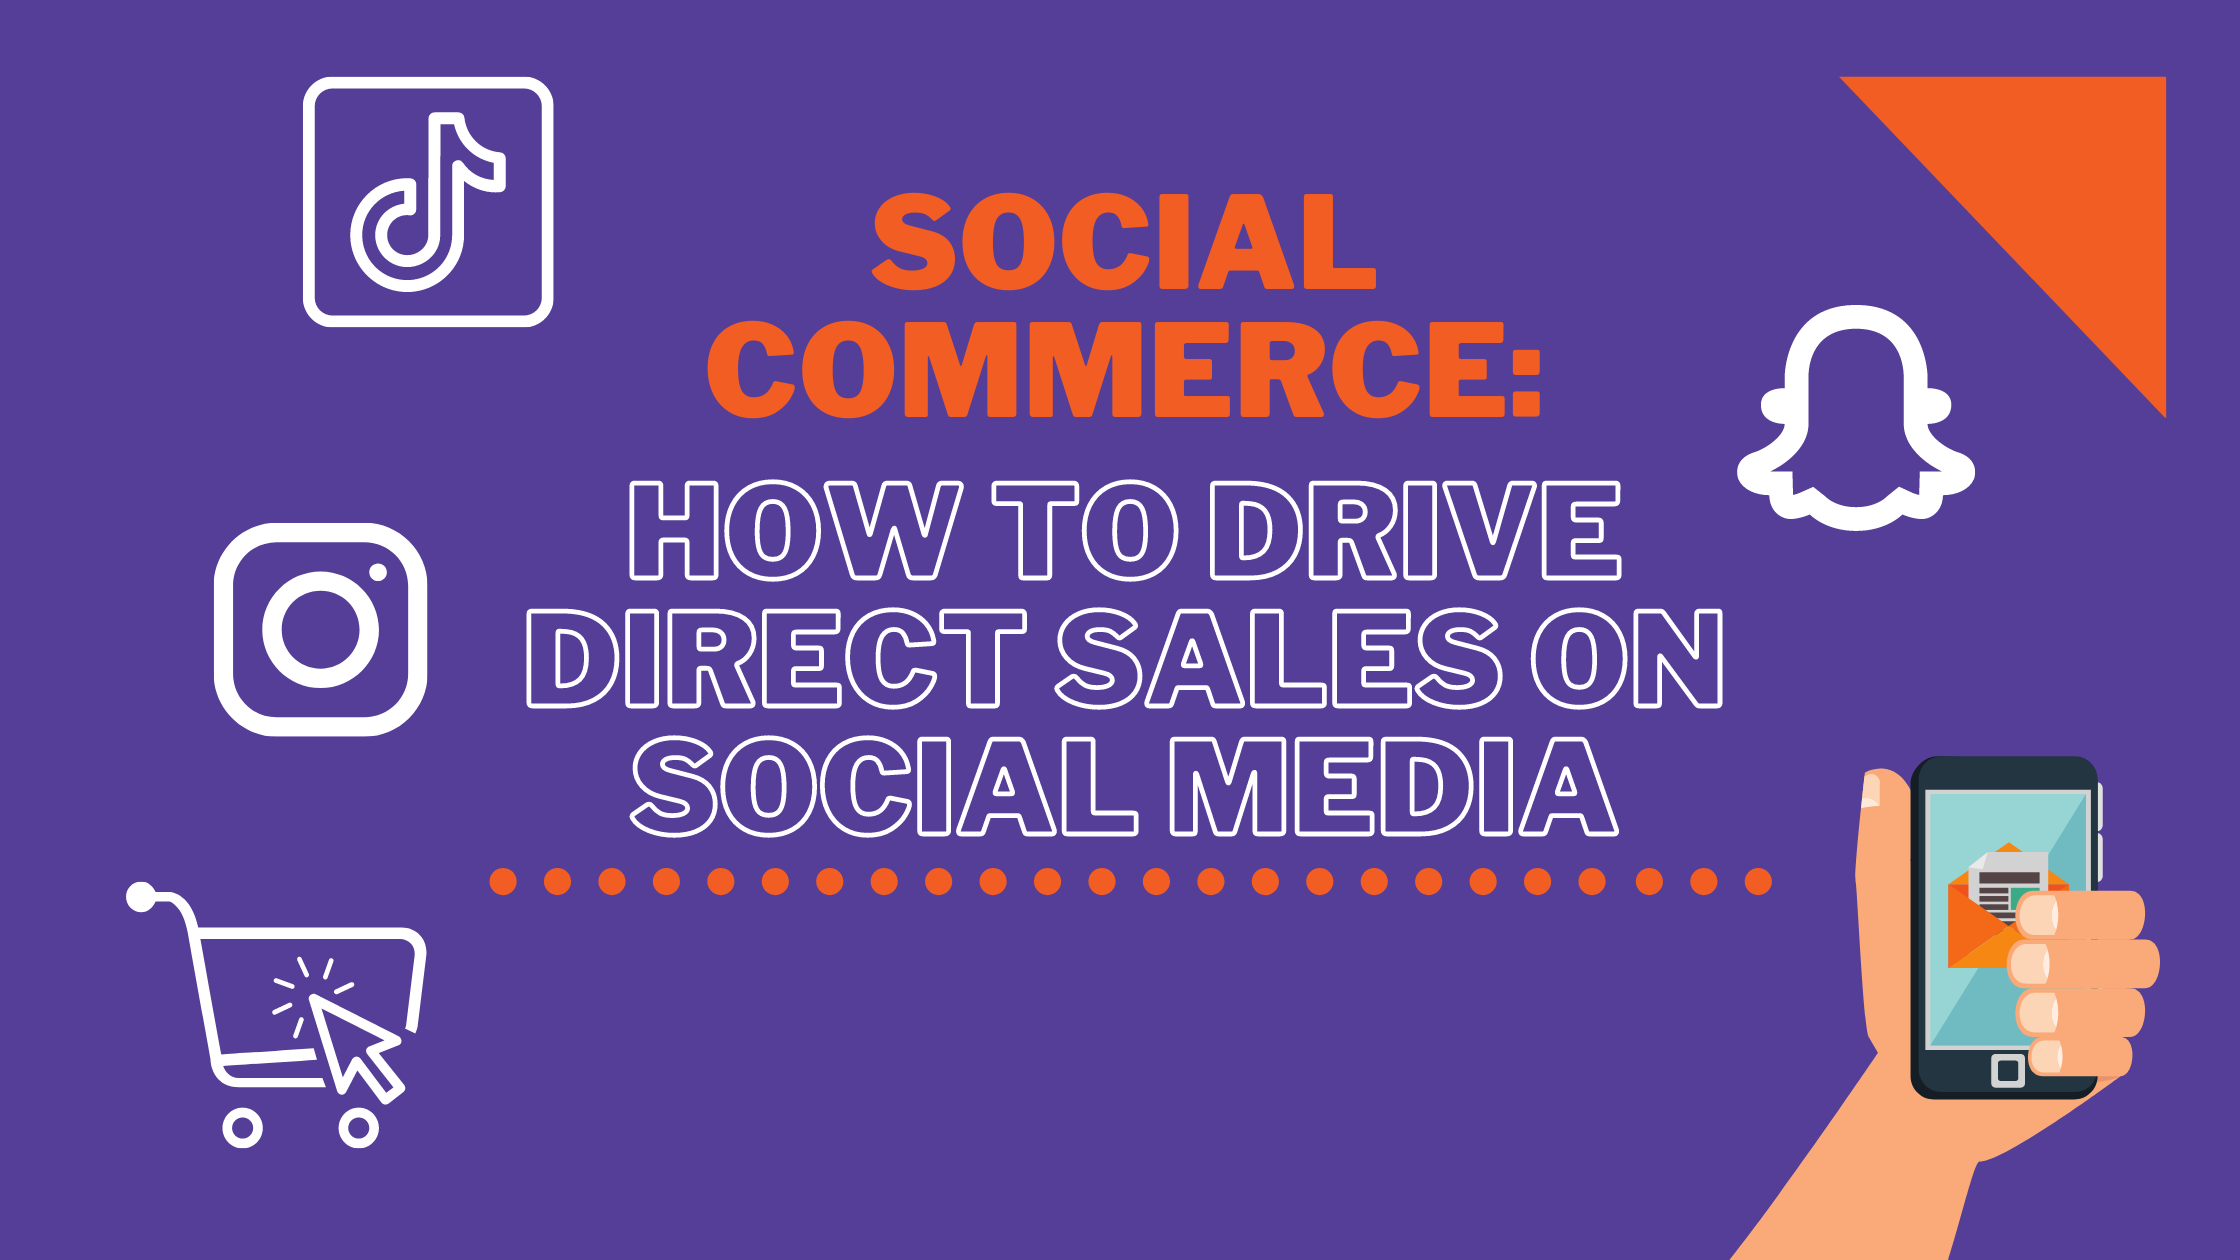 Social Commerce: How to Drive Direct Sales On Social Media